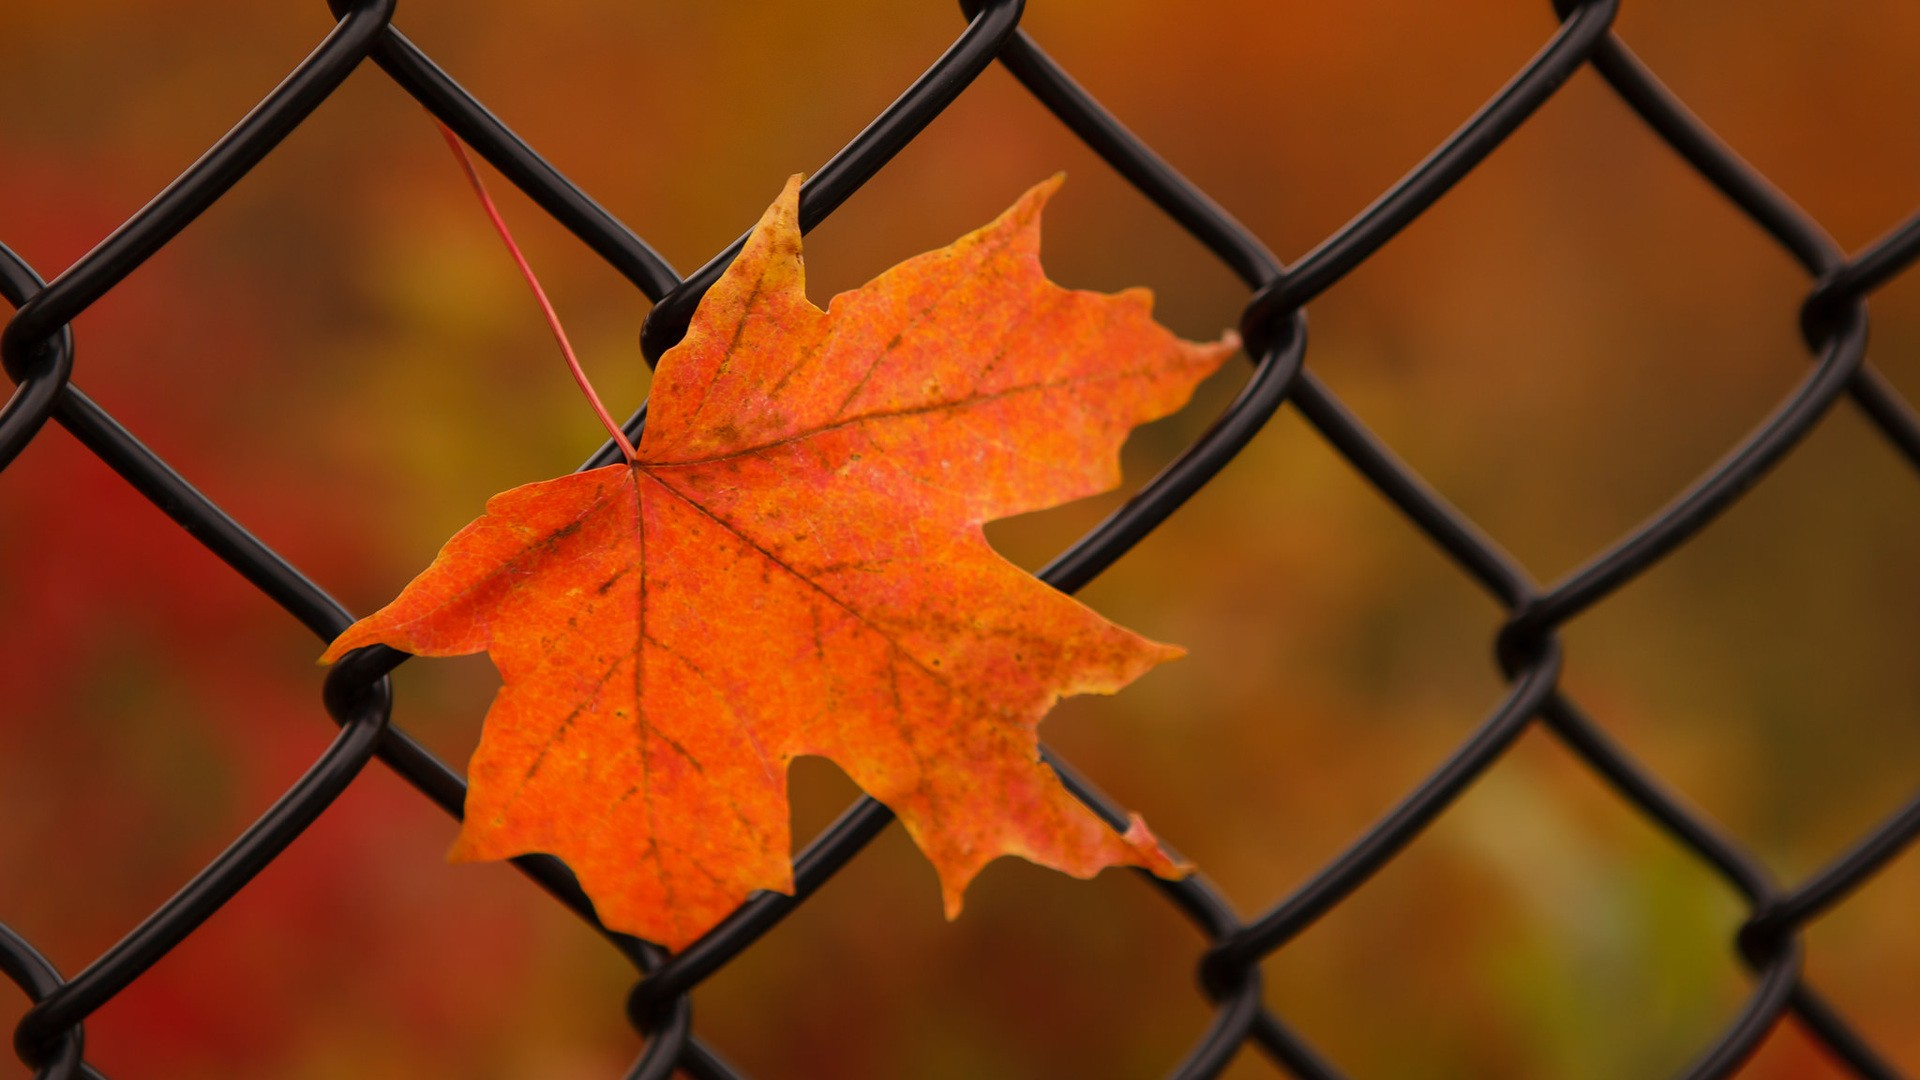 General 1920x1080 nature leaves maple leaves closeup fence fall metal depth of field